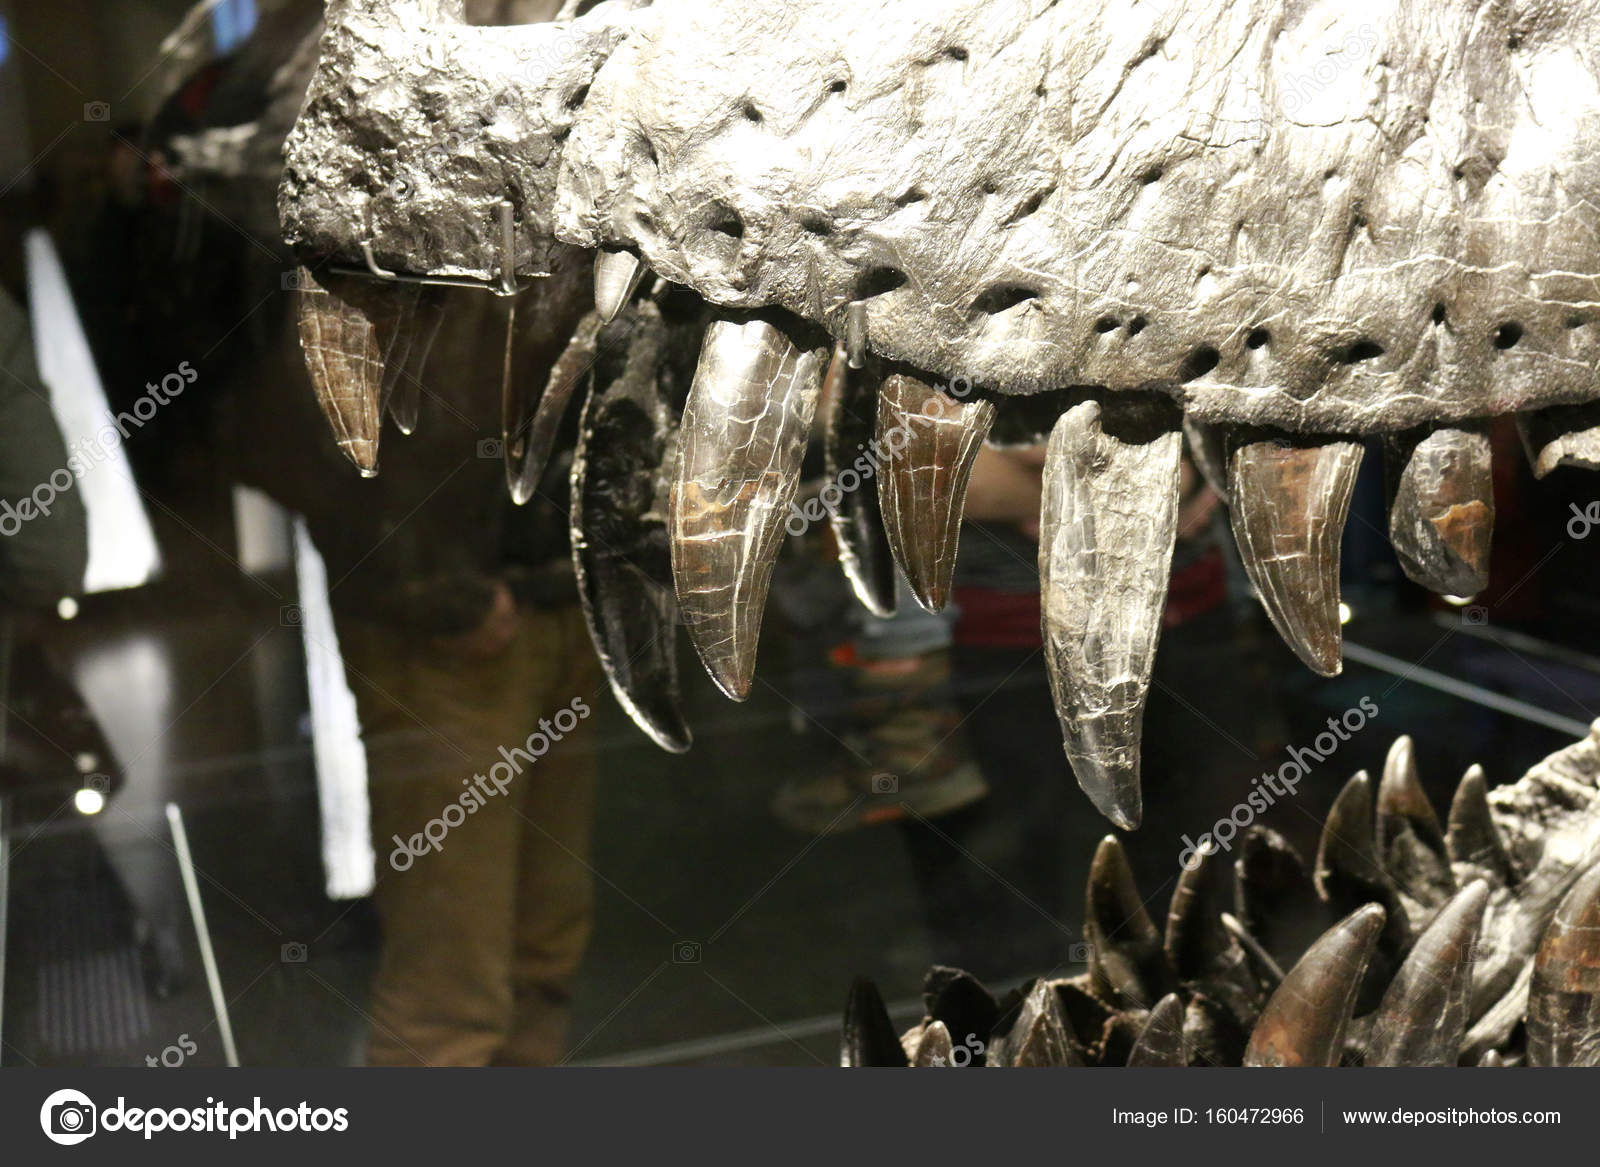 Natural history museum berlin stock editorial photo 360ber the head of the tyrannus saurus rex tristan otto natural history museum berlin photo by 360ber thecheapjerseys